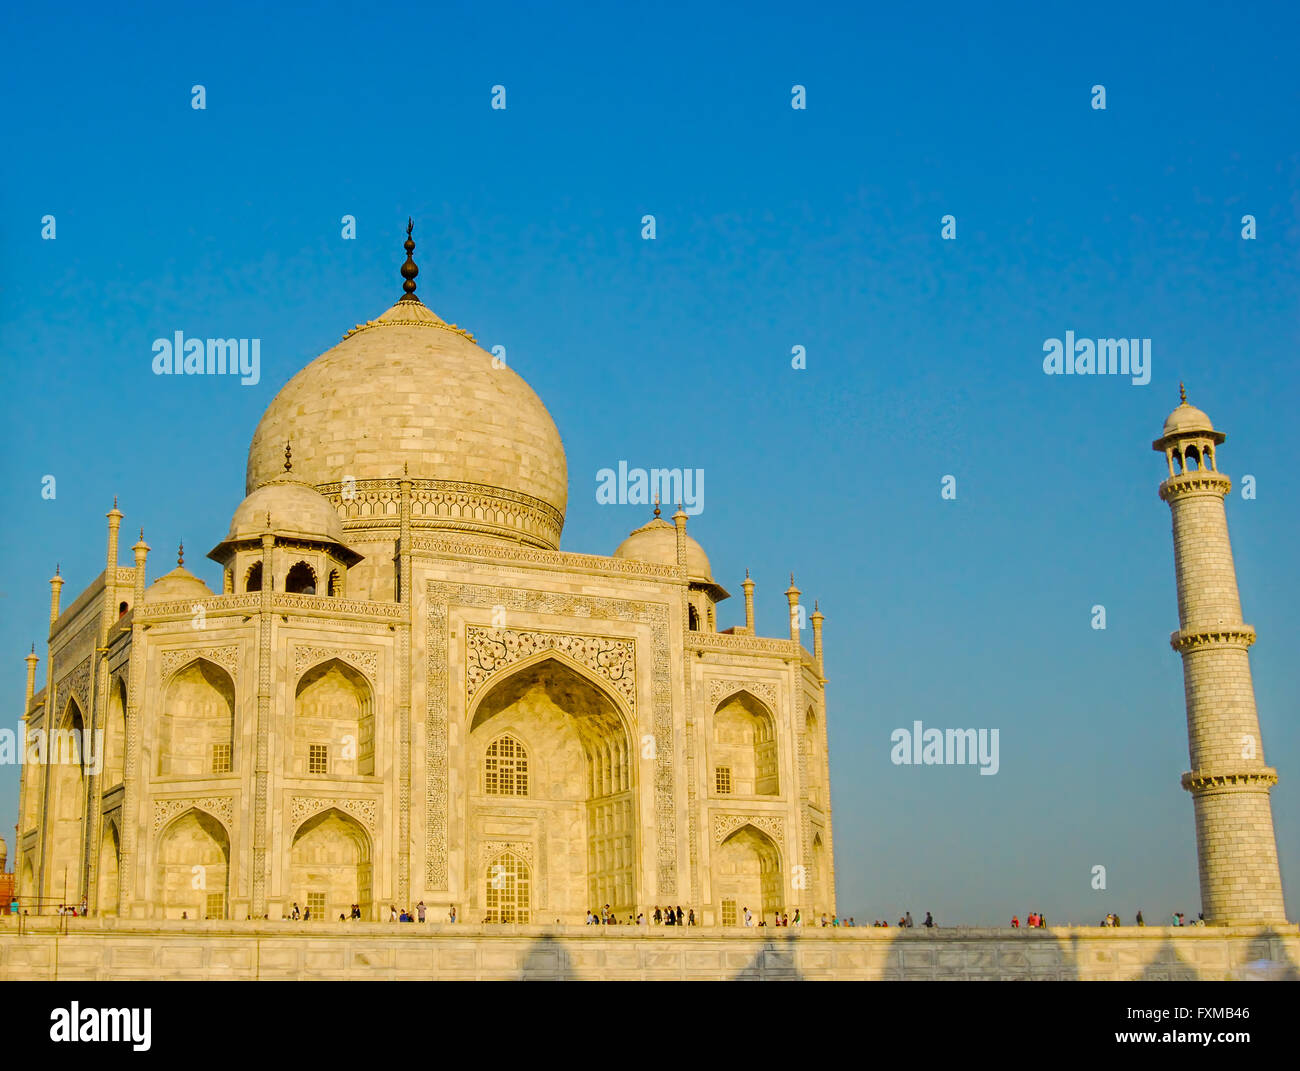 The Taj Mahal, Agra, Uttar Pradesh, India. - Stock Image